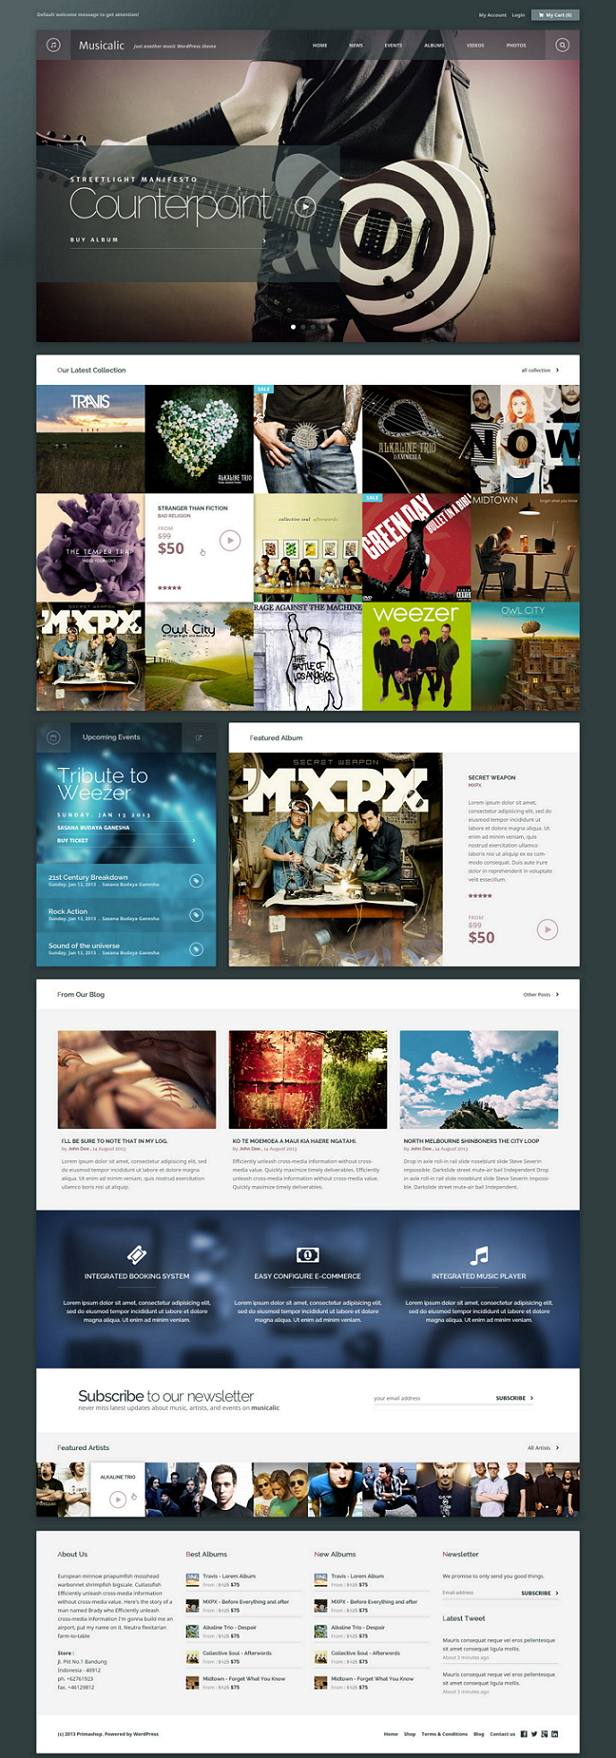 Angkloong is a multipurpose theme specially designed for bands and musicians and comes with comp ...